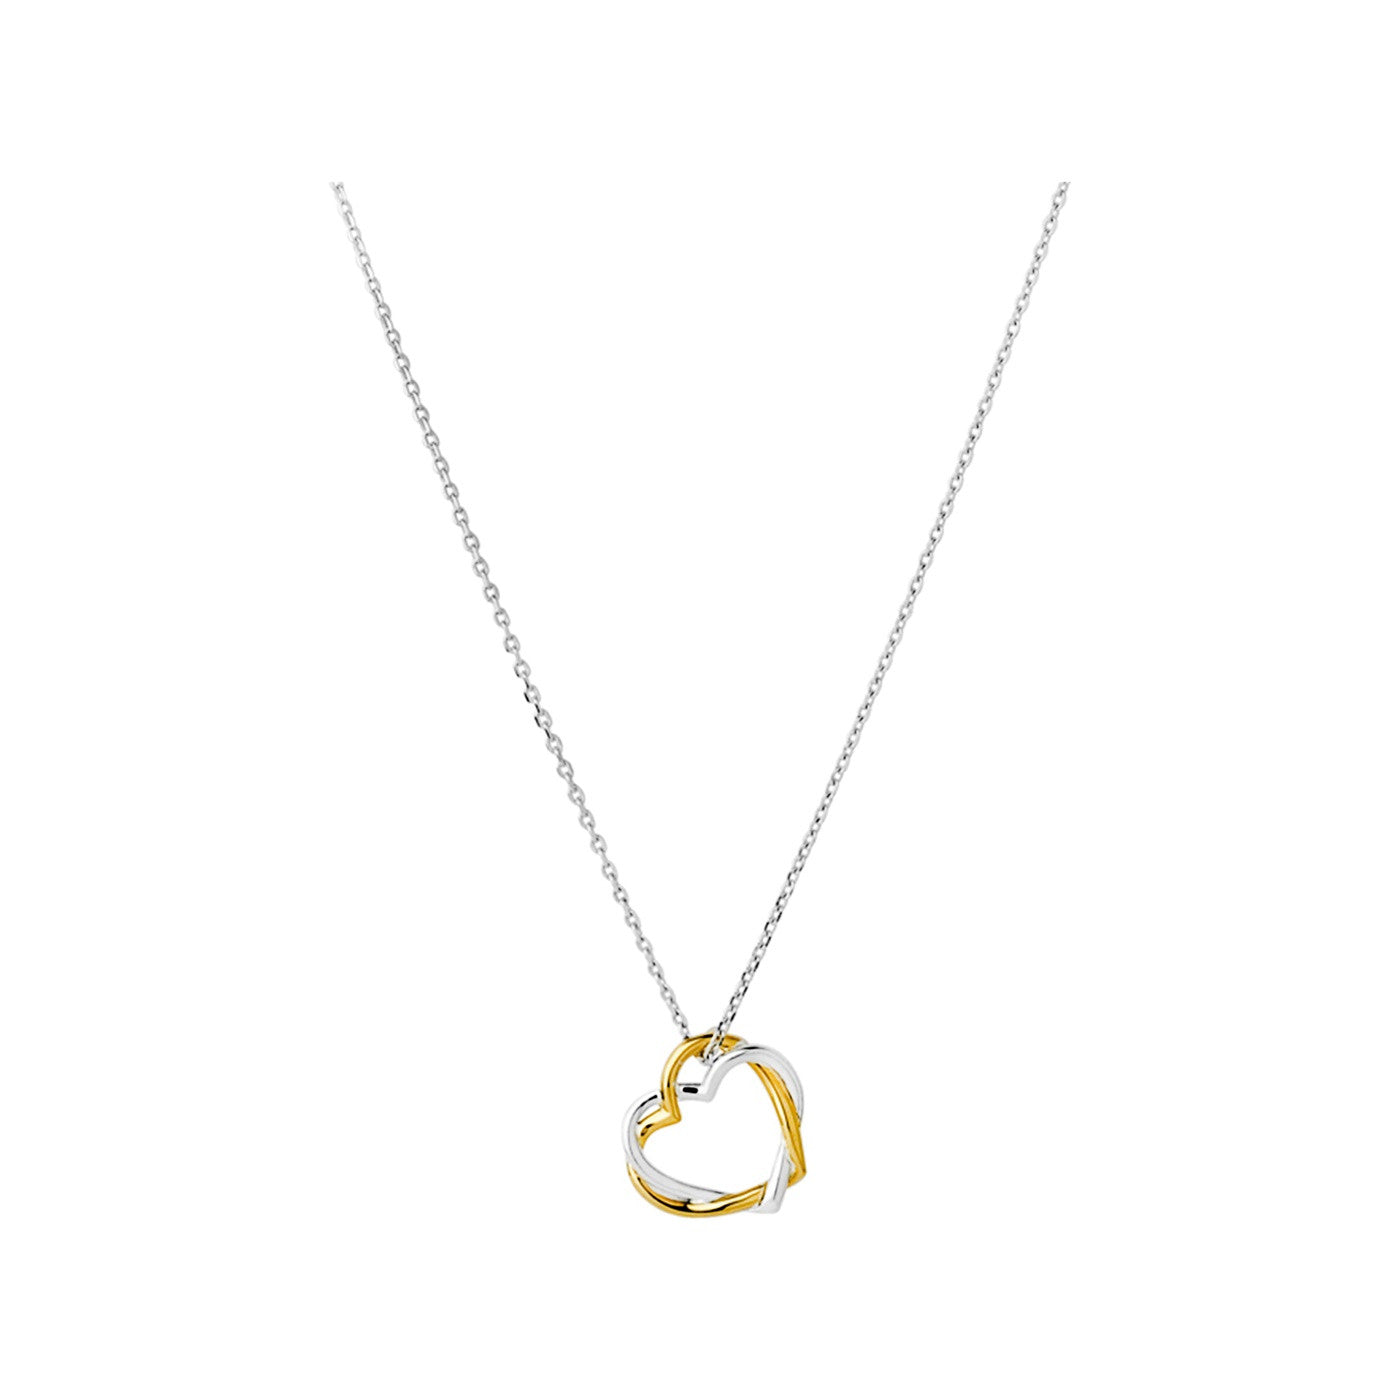 Links of London Kindred Soul Yellow Gold Pendant Necklace - 5024.1350